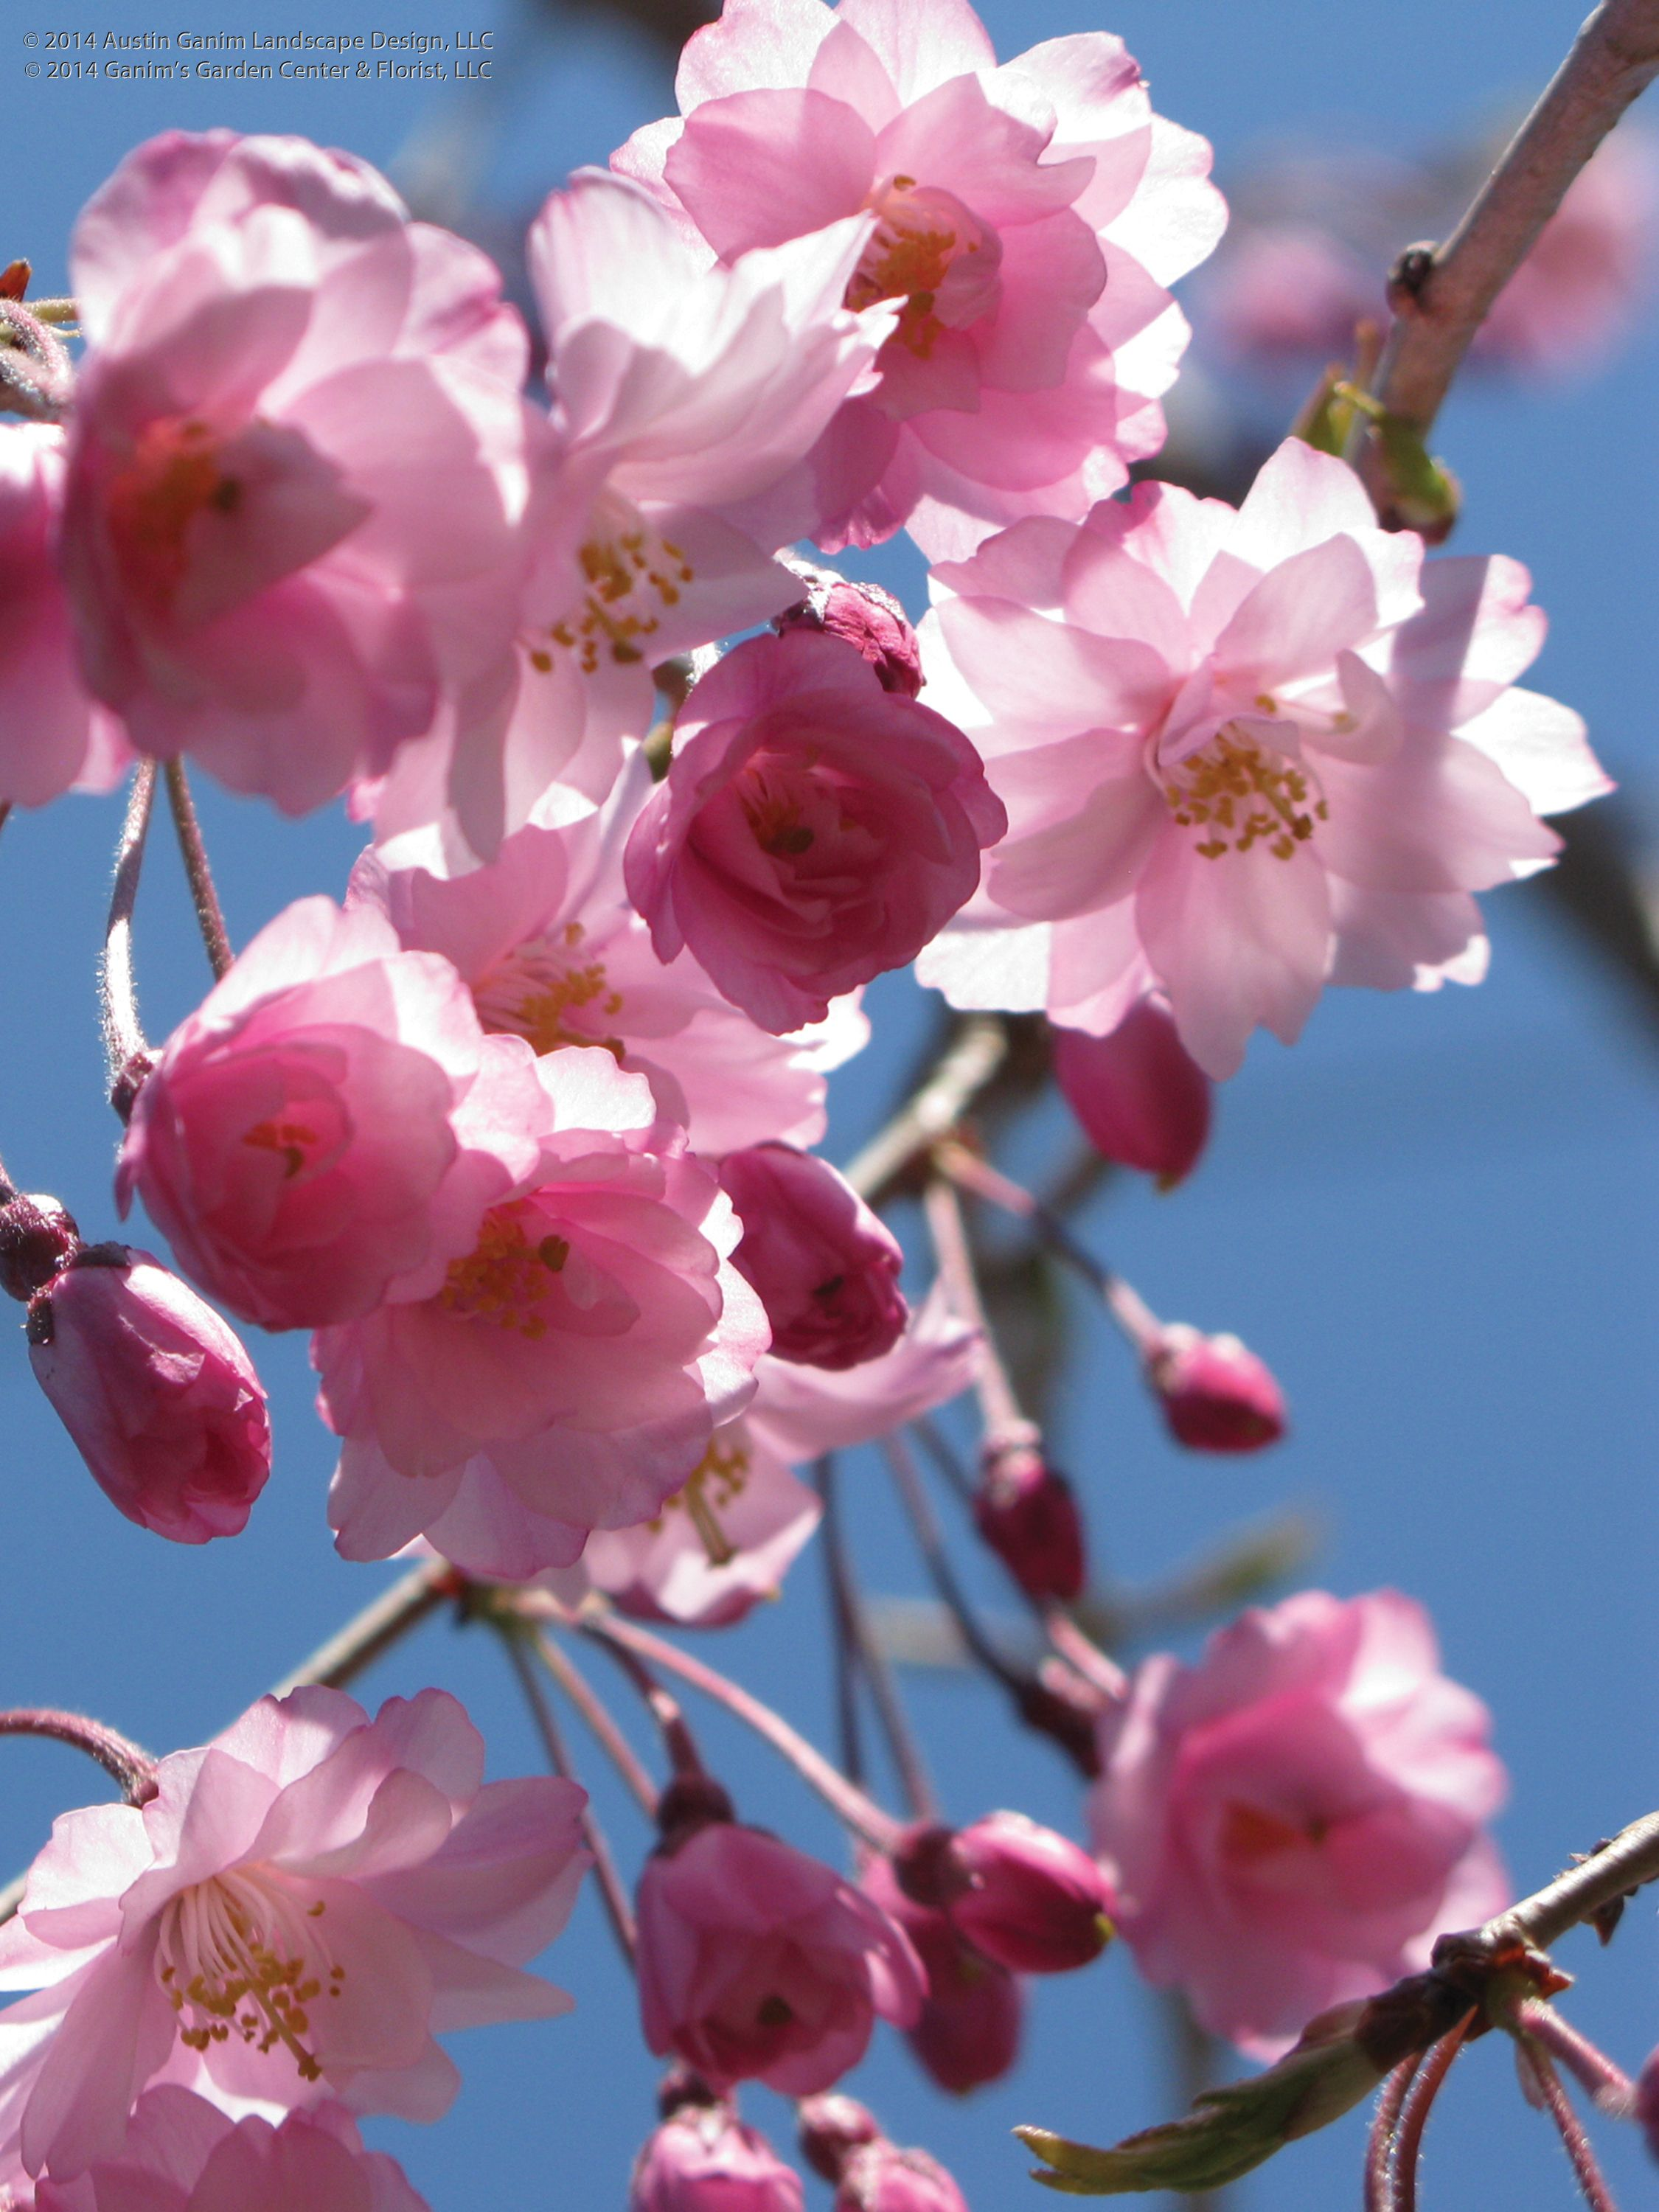 Prunus Serrulata Kwanzan Kwanzan Flowering Cherry These Double Flowering Pale Pink Cherries Flowers Almost Glow In The The April Sunlight Papeis De Parede